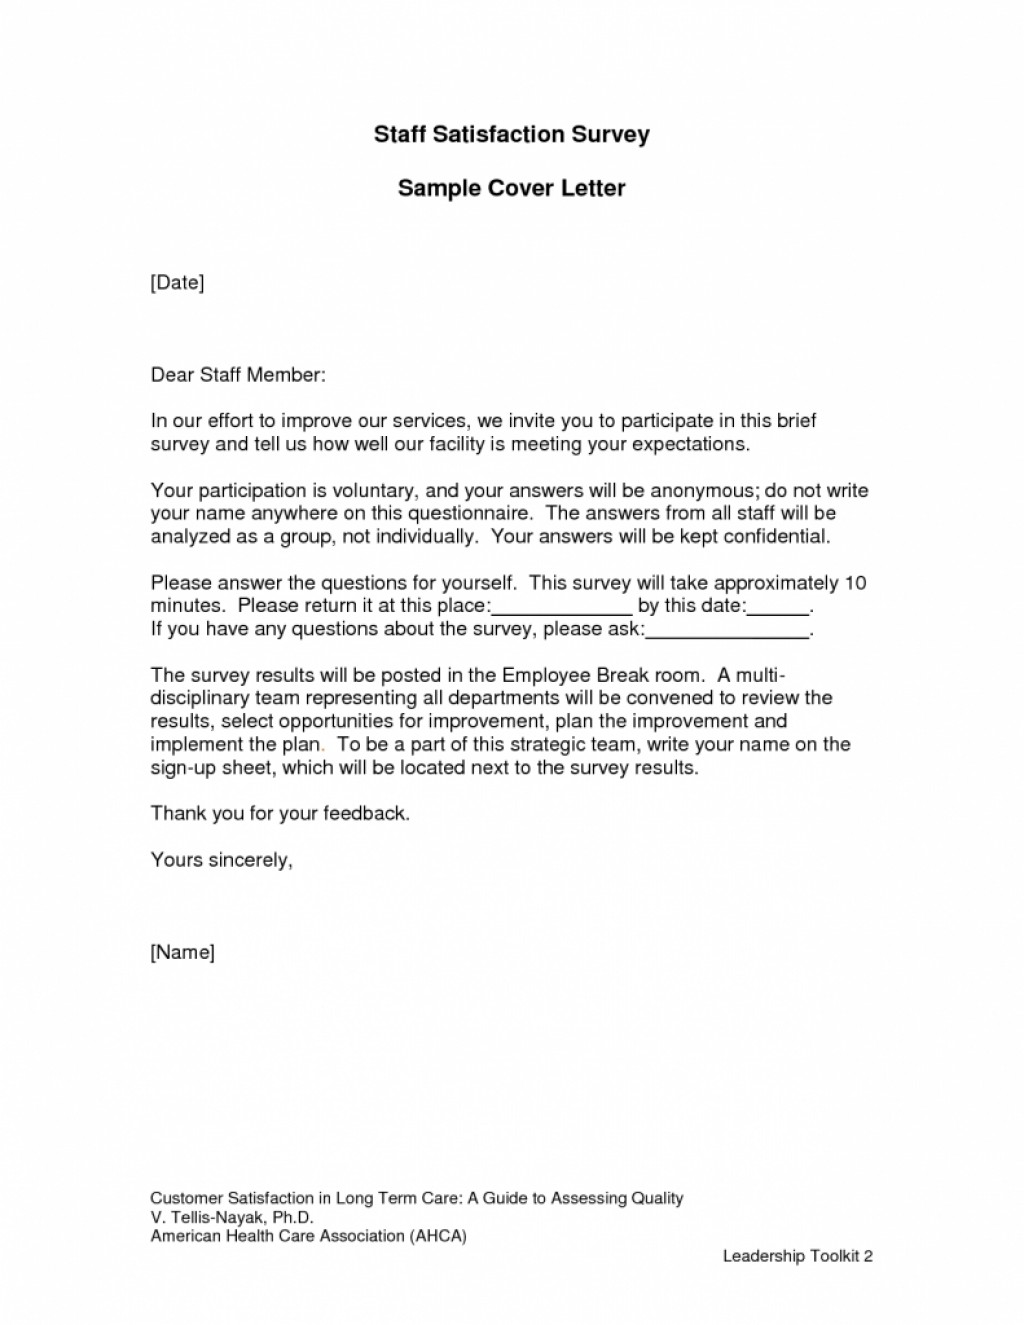 002 Research Paper Questionnaire Cover Letter Sample1 Unique For Sample Associate Position Large